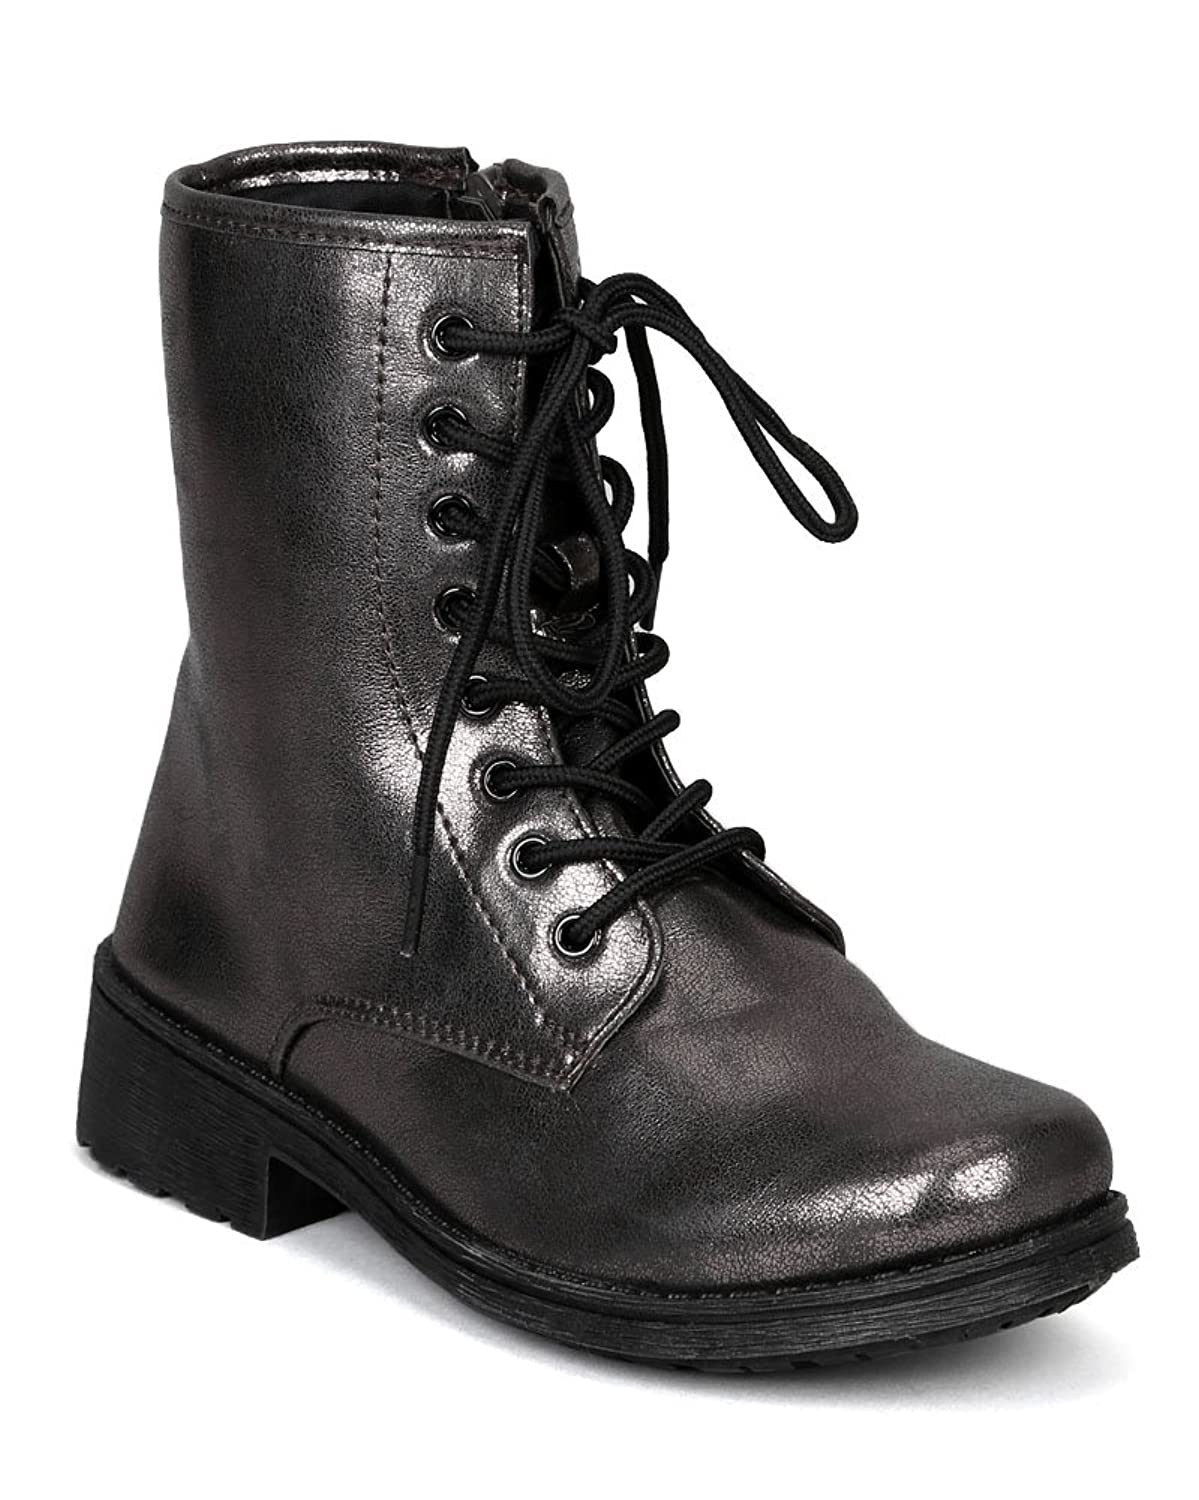 Missile-04 New Lace Up Round Toe Combat Boot w/ Side Zipper - Pewter Metallic